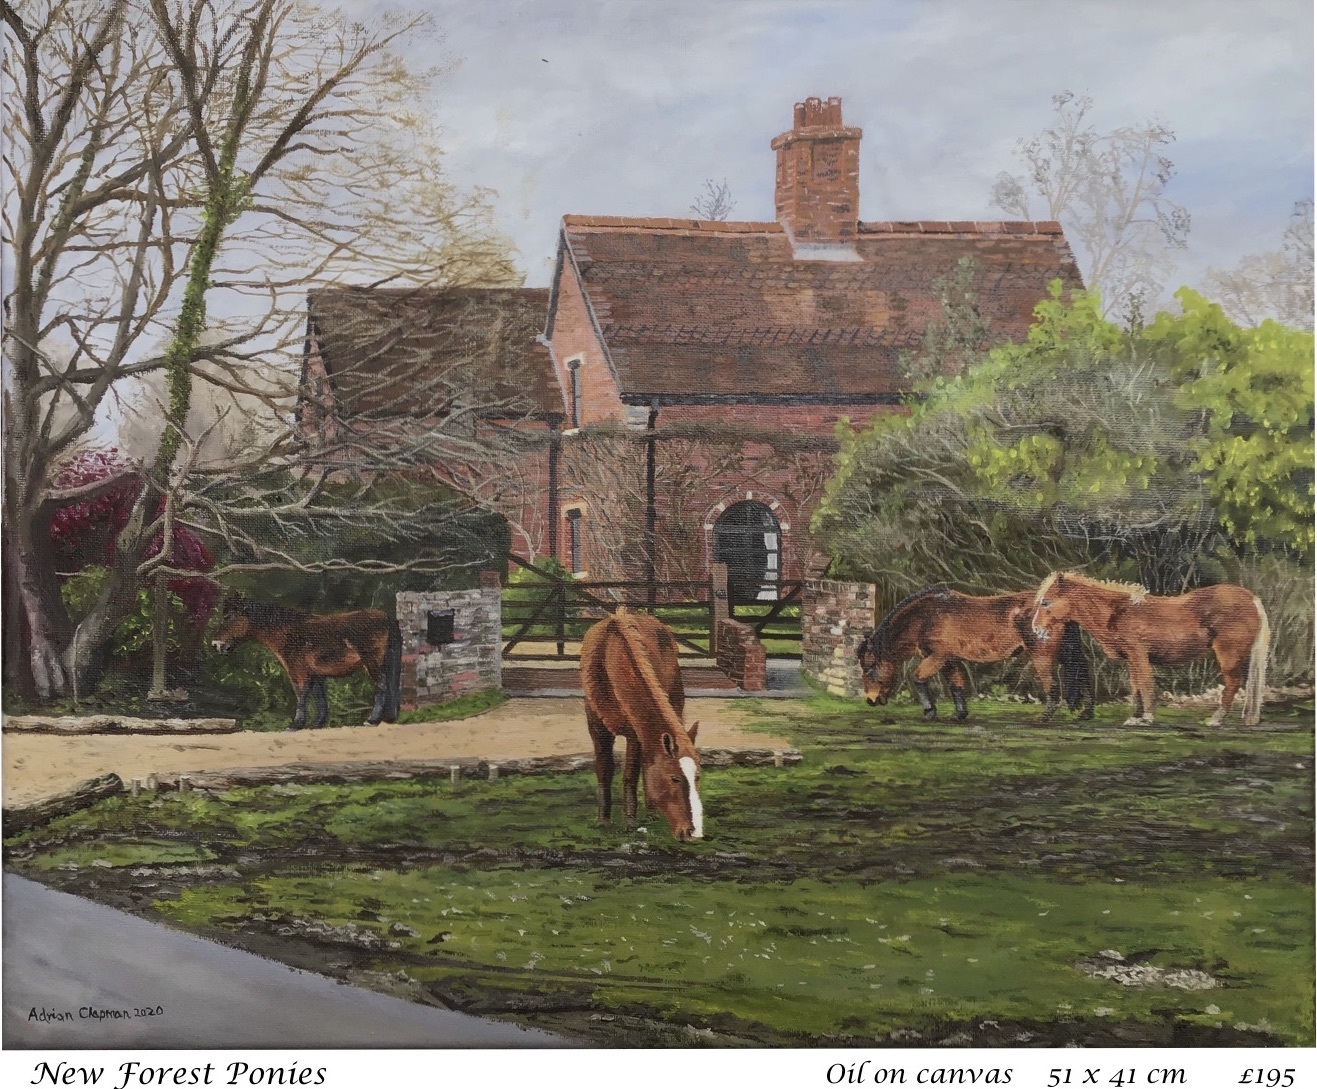 1. New Forest Ponies